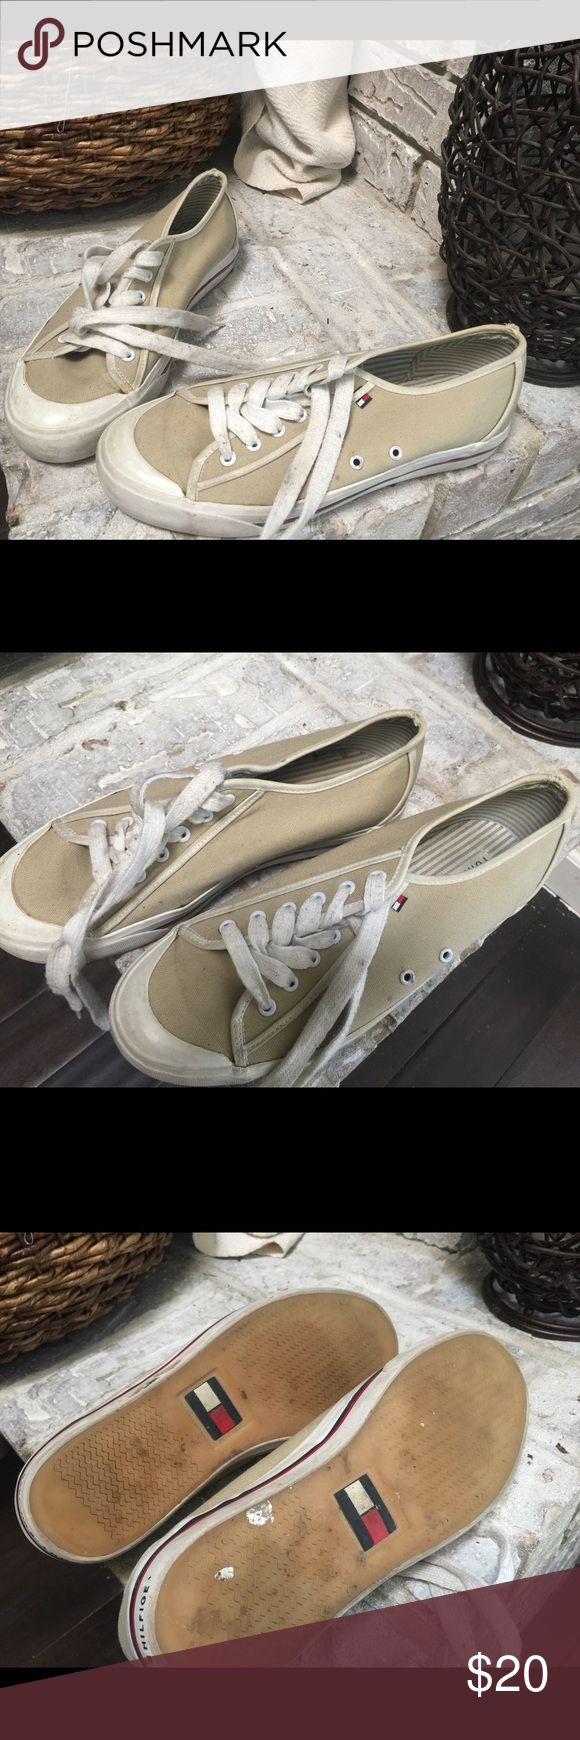 Tommy Hilfiger Tennis Shoes Great condition! Khaki Tommy tennis shoes. They've been barely worn! Tommy Hilfiger Shoes Sneakers